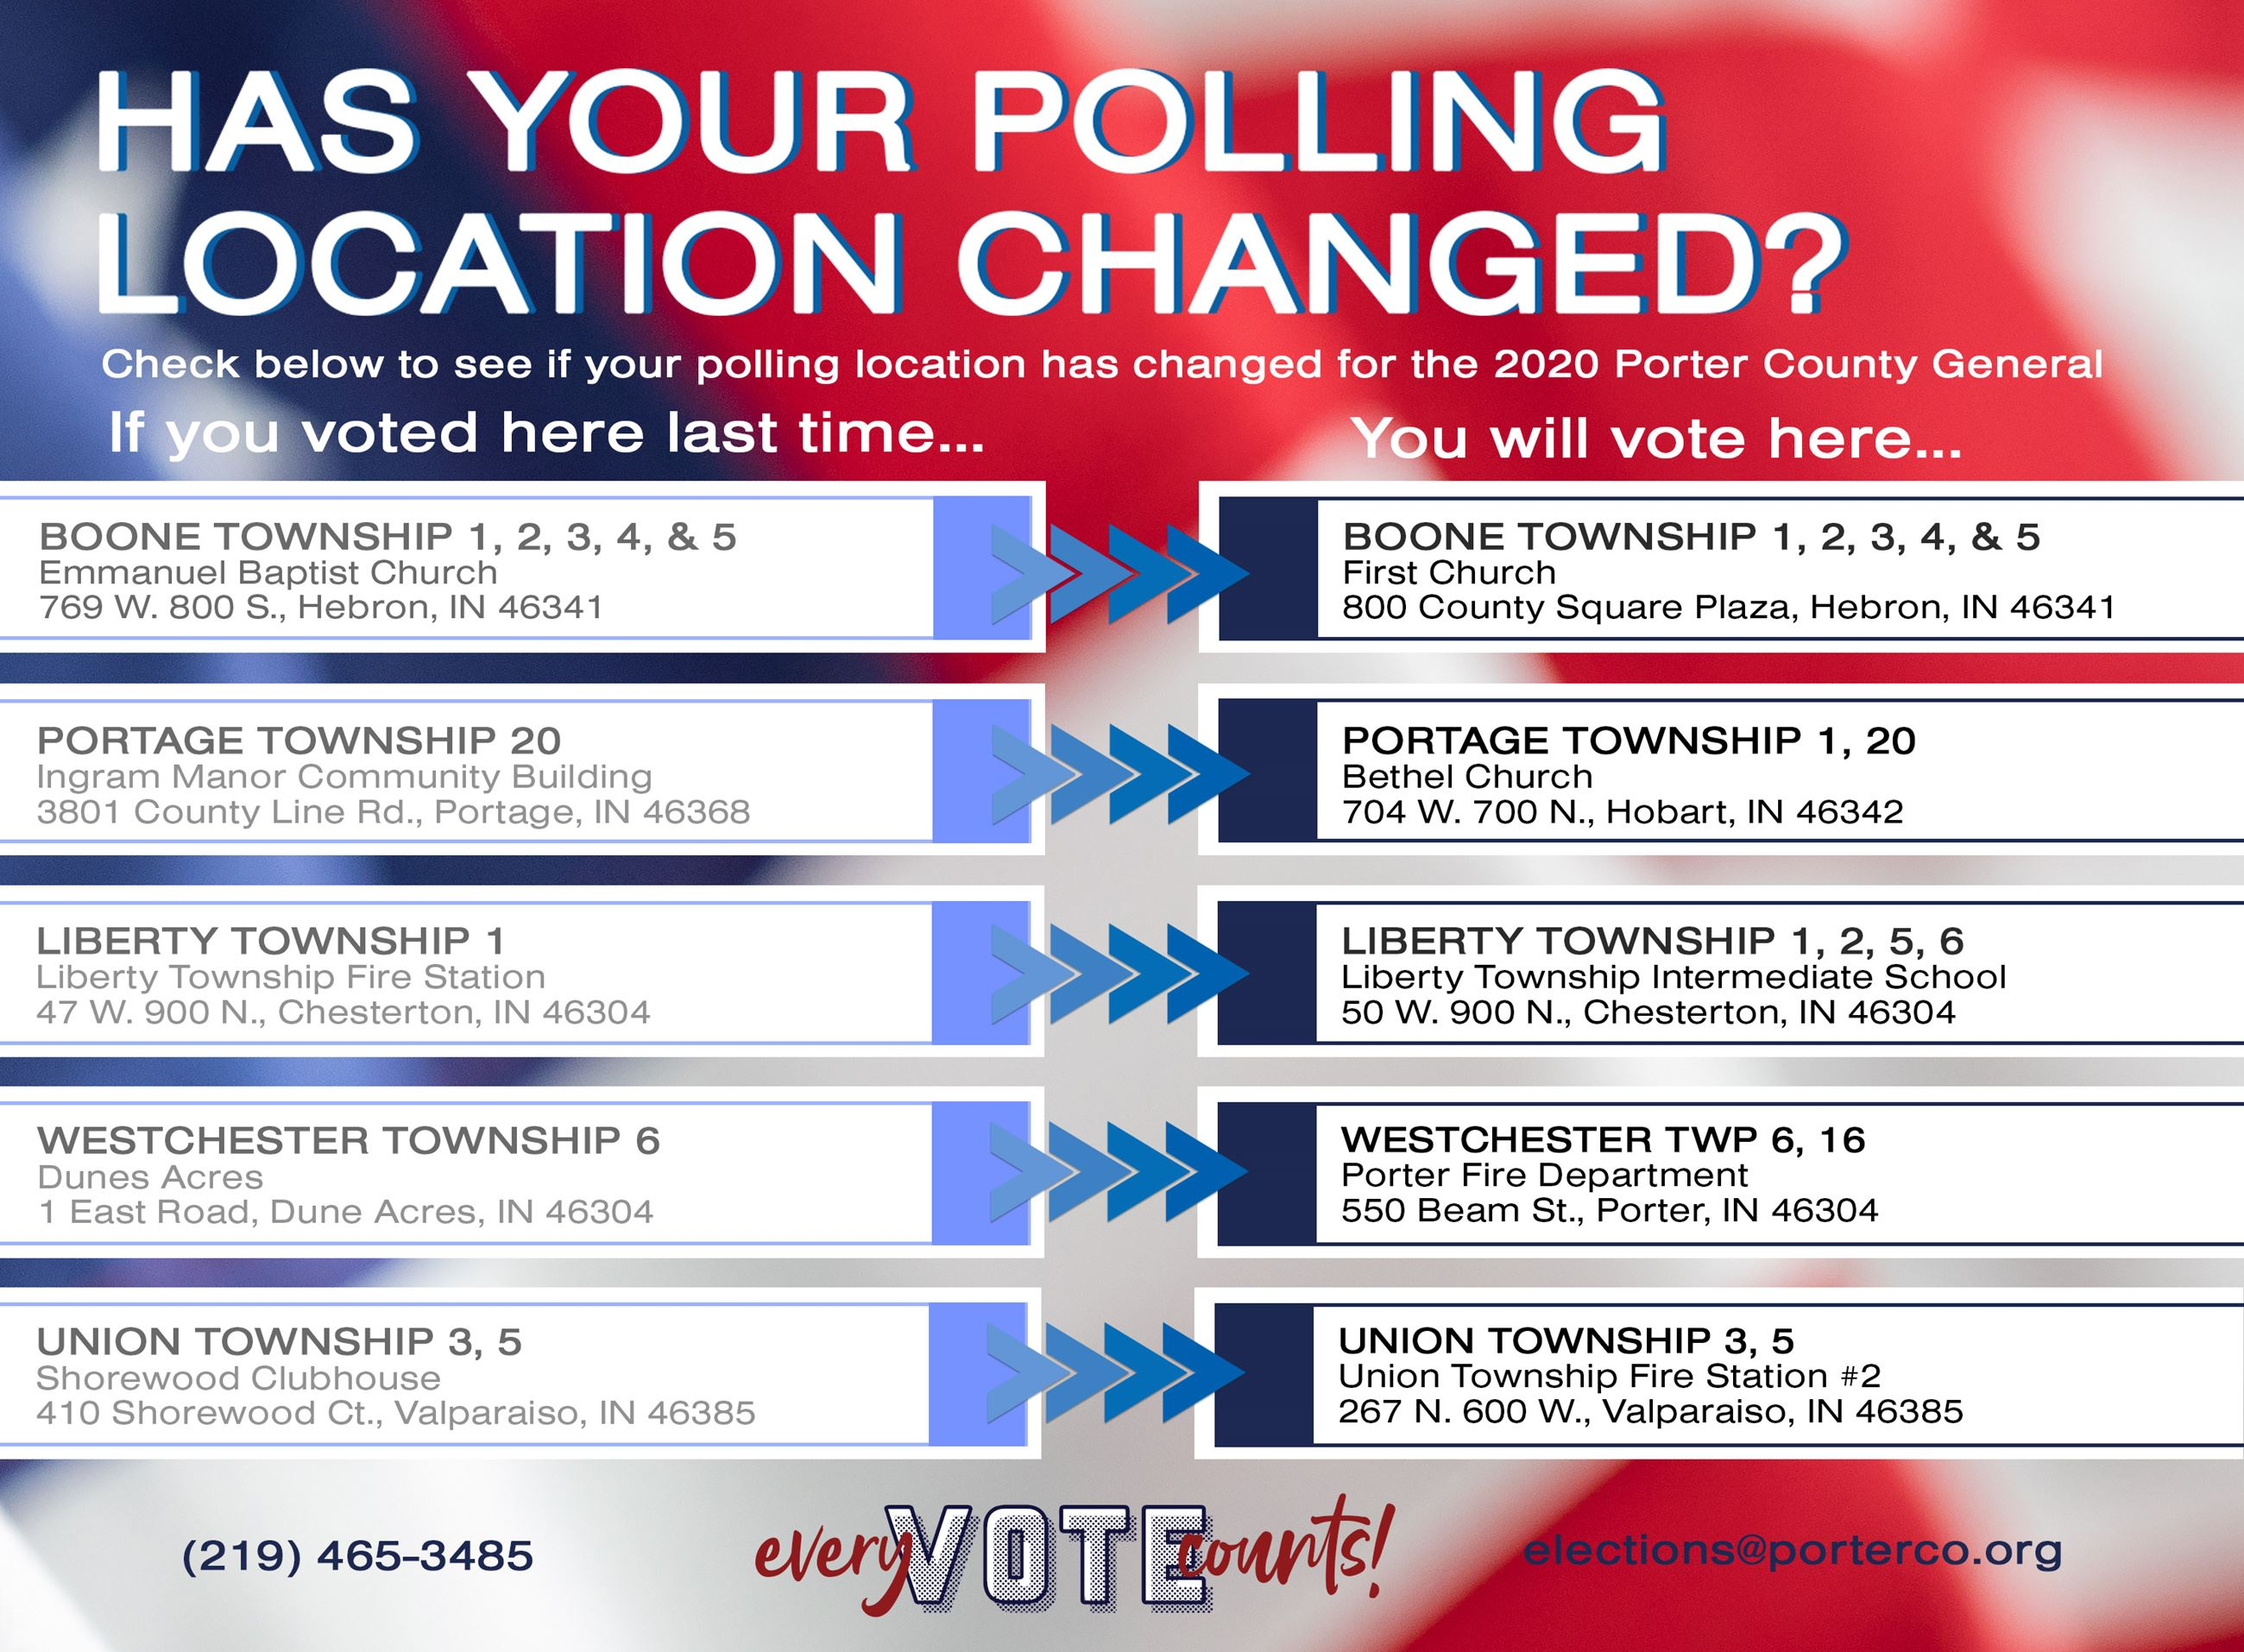 Polling Location Changes For2020 General Election Last Updated October 30, 2020